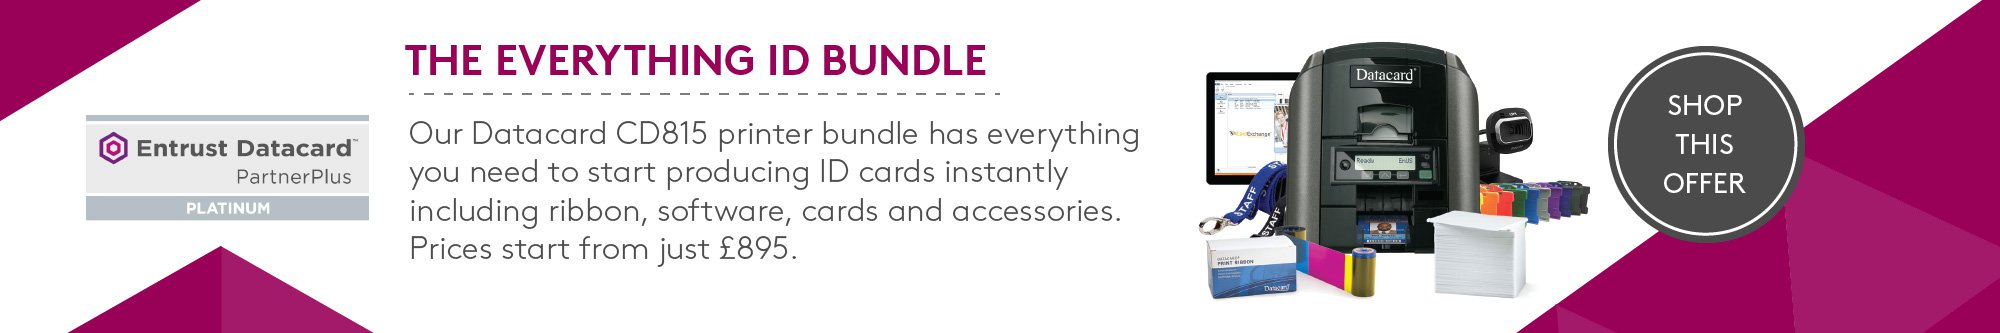 Datacard CD815 printer bundle banner